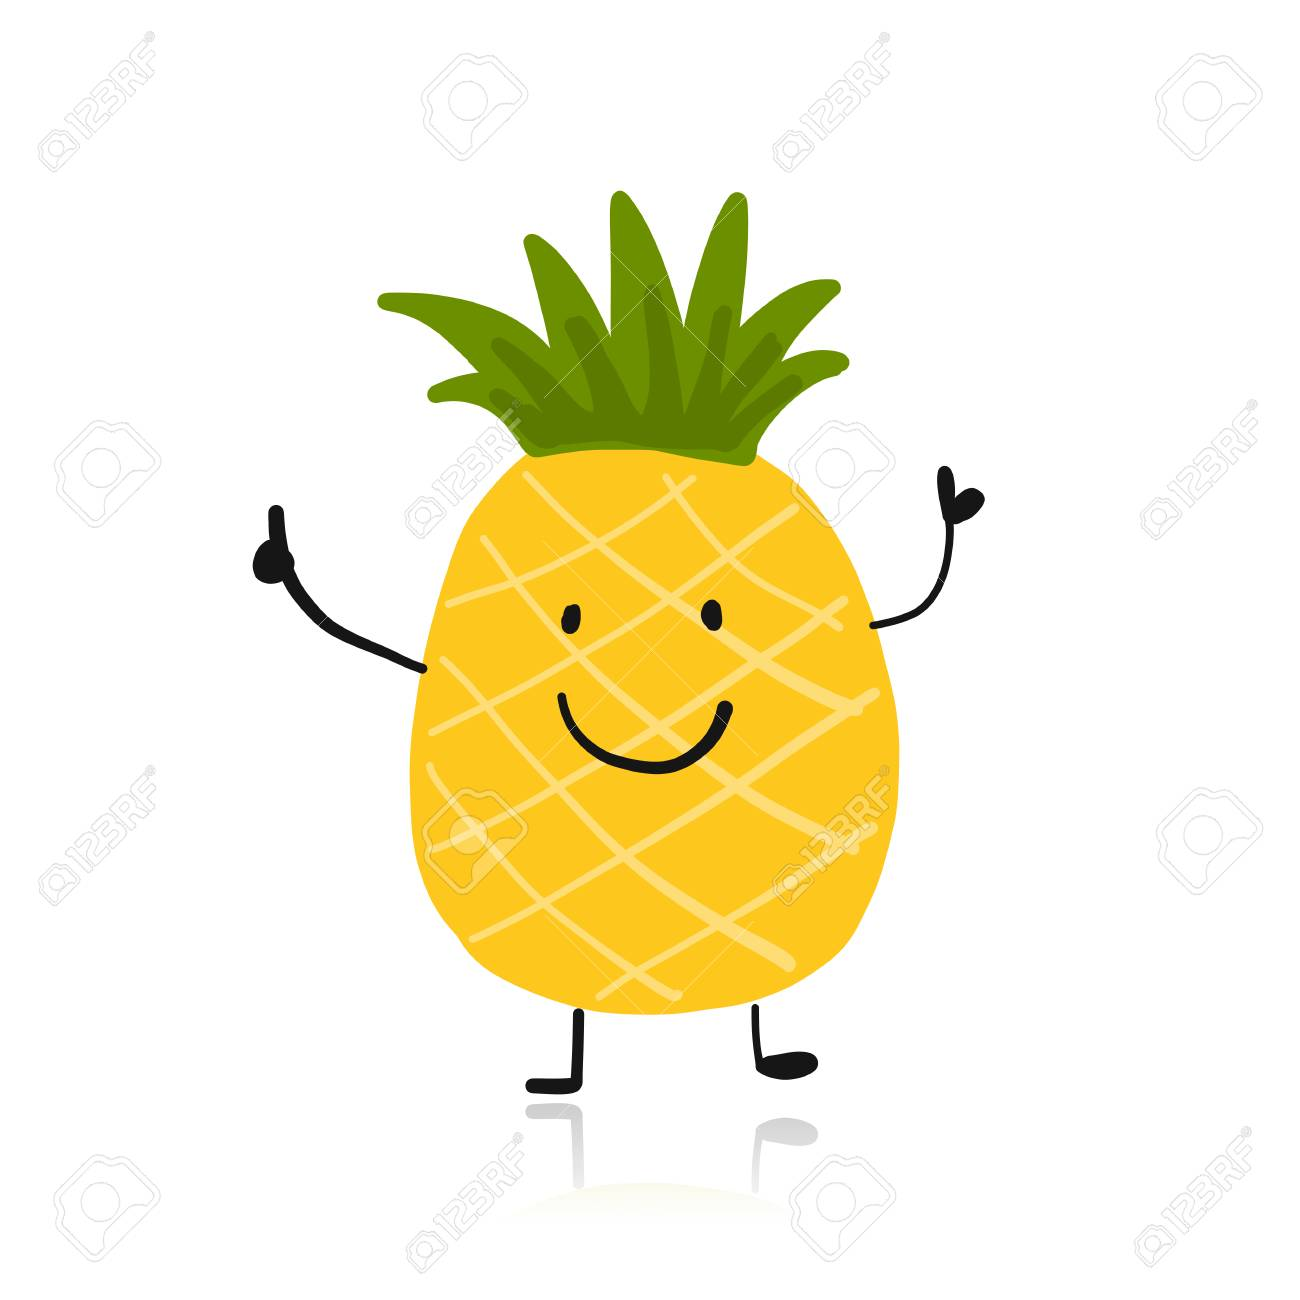 Pineapple, cute character for your design illustration..